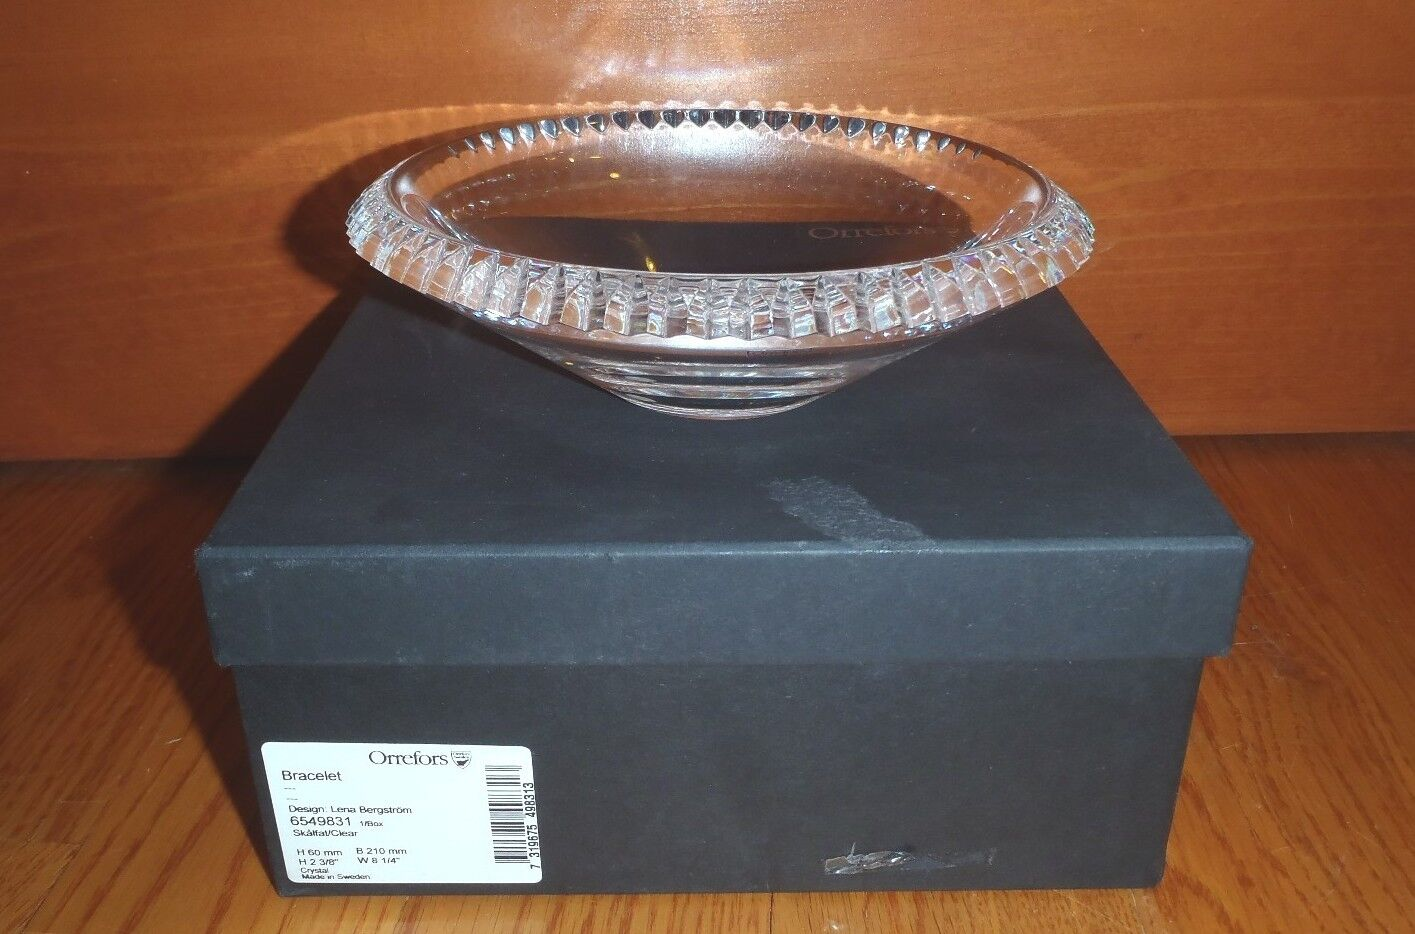 Orrefors  Bracelet Low Bowl by Lena Bergstrom  New in Box